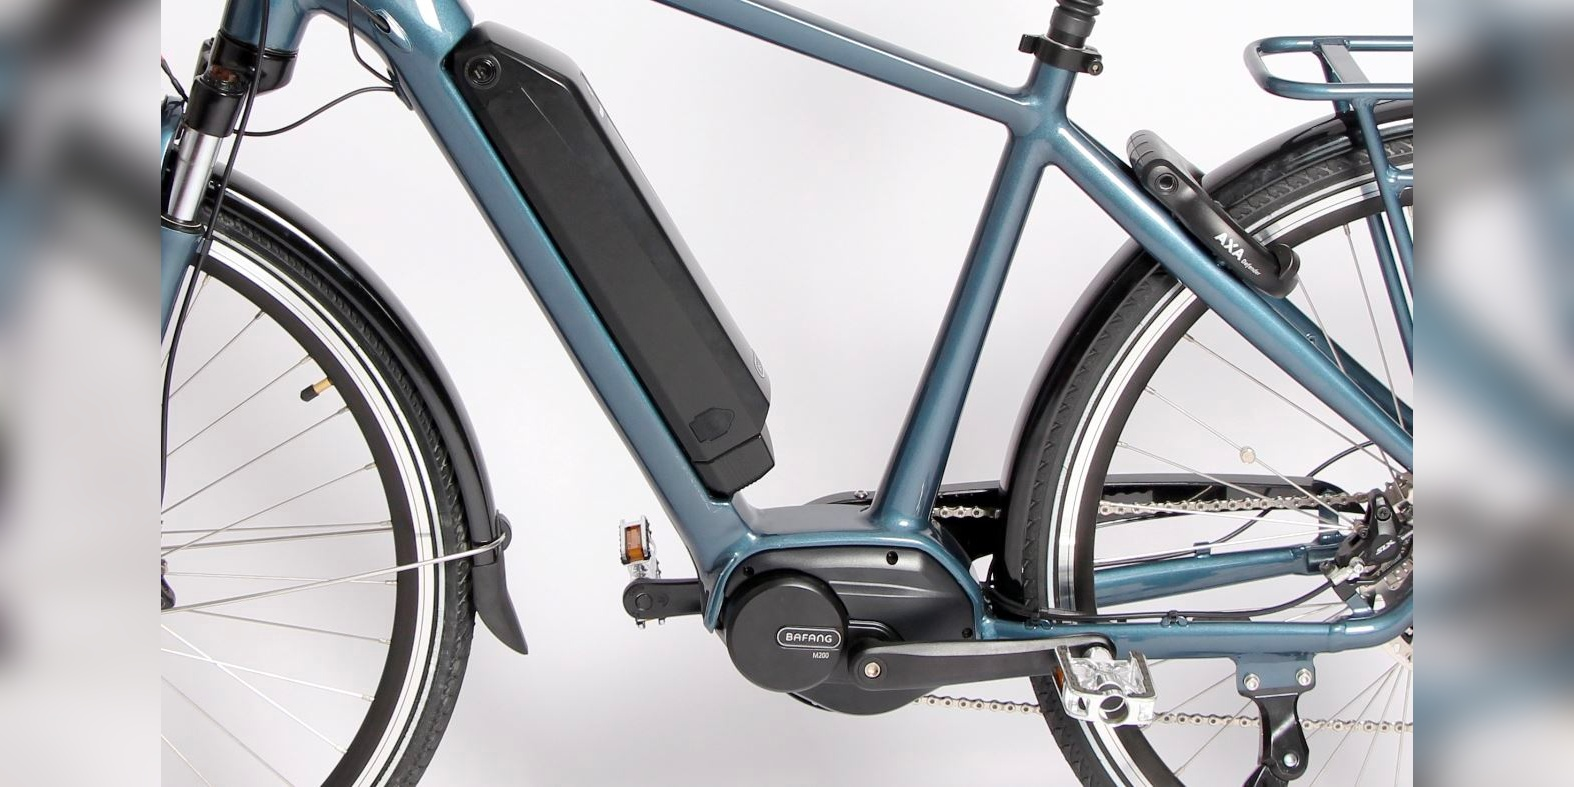 Bafang's new M200 mid-drive motor set to help lower e-bike prices